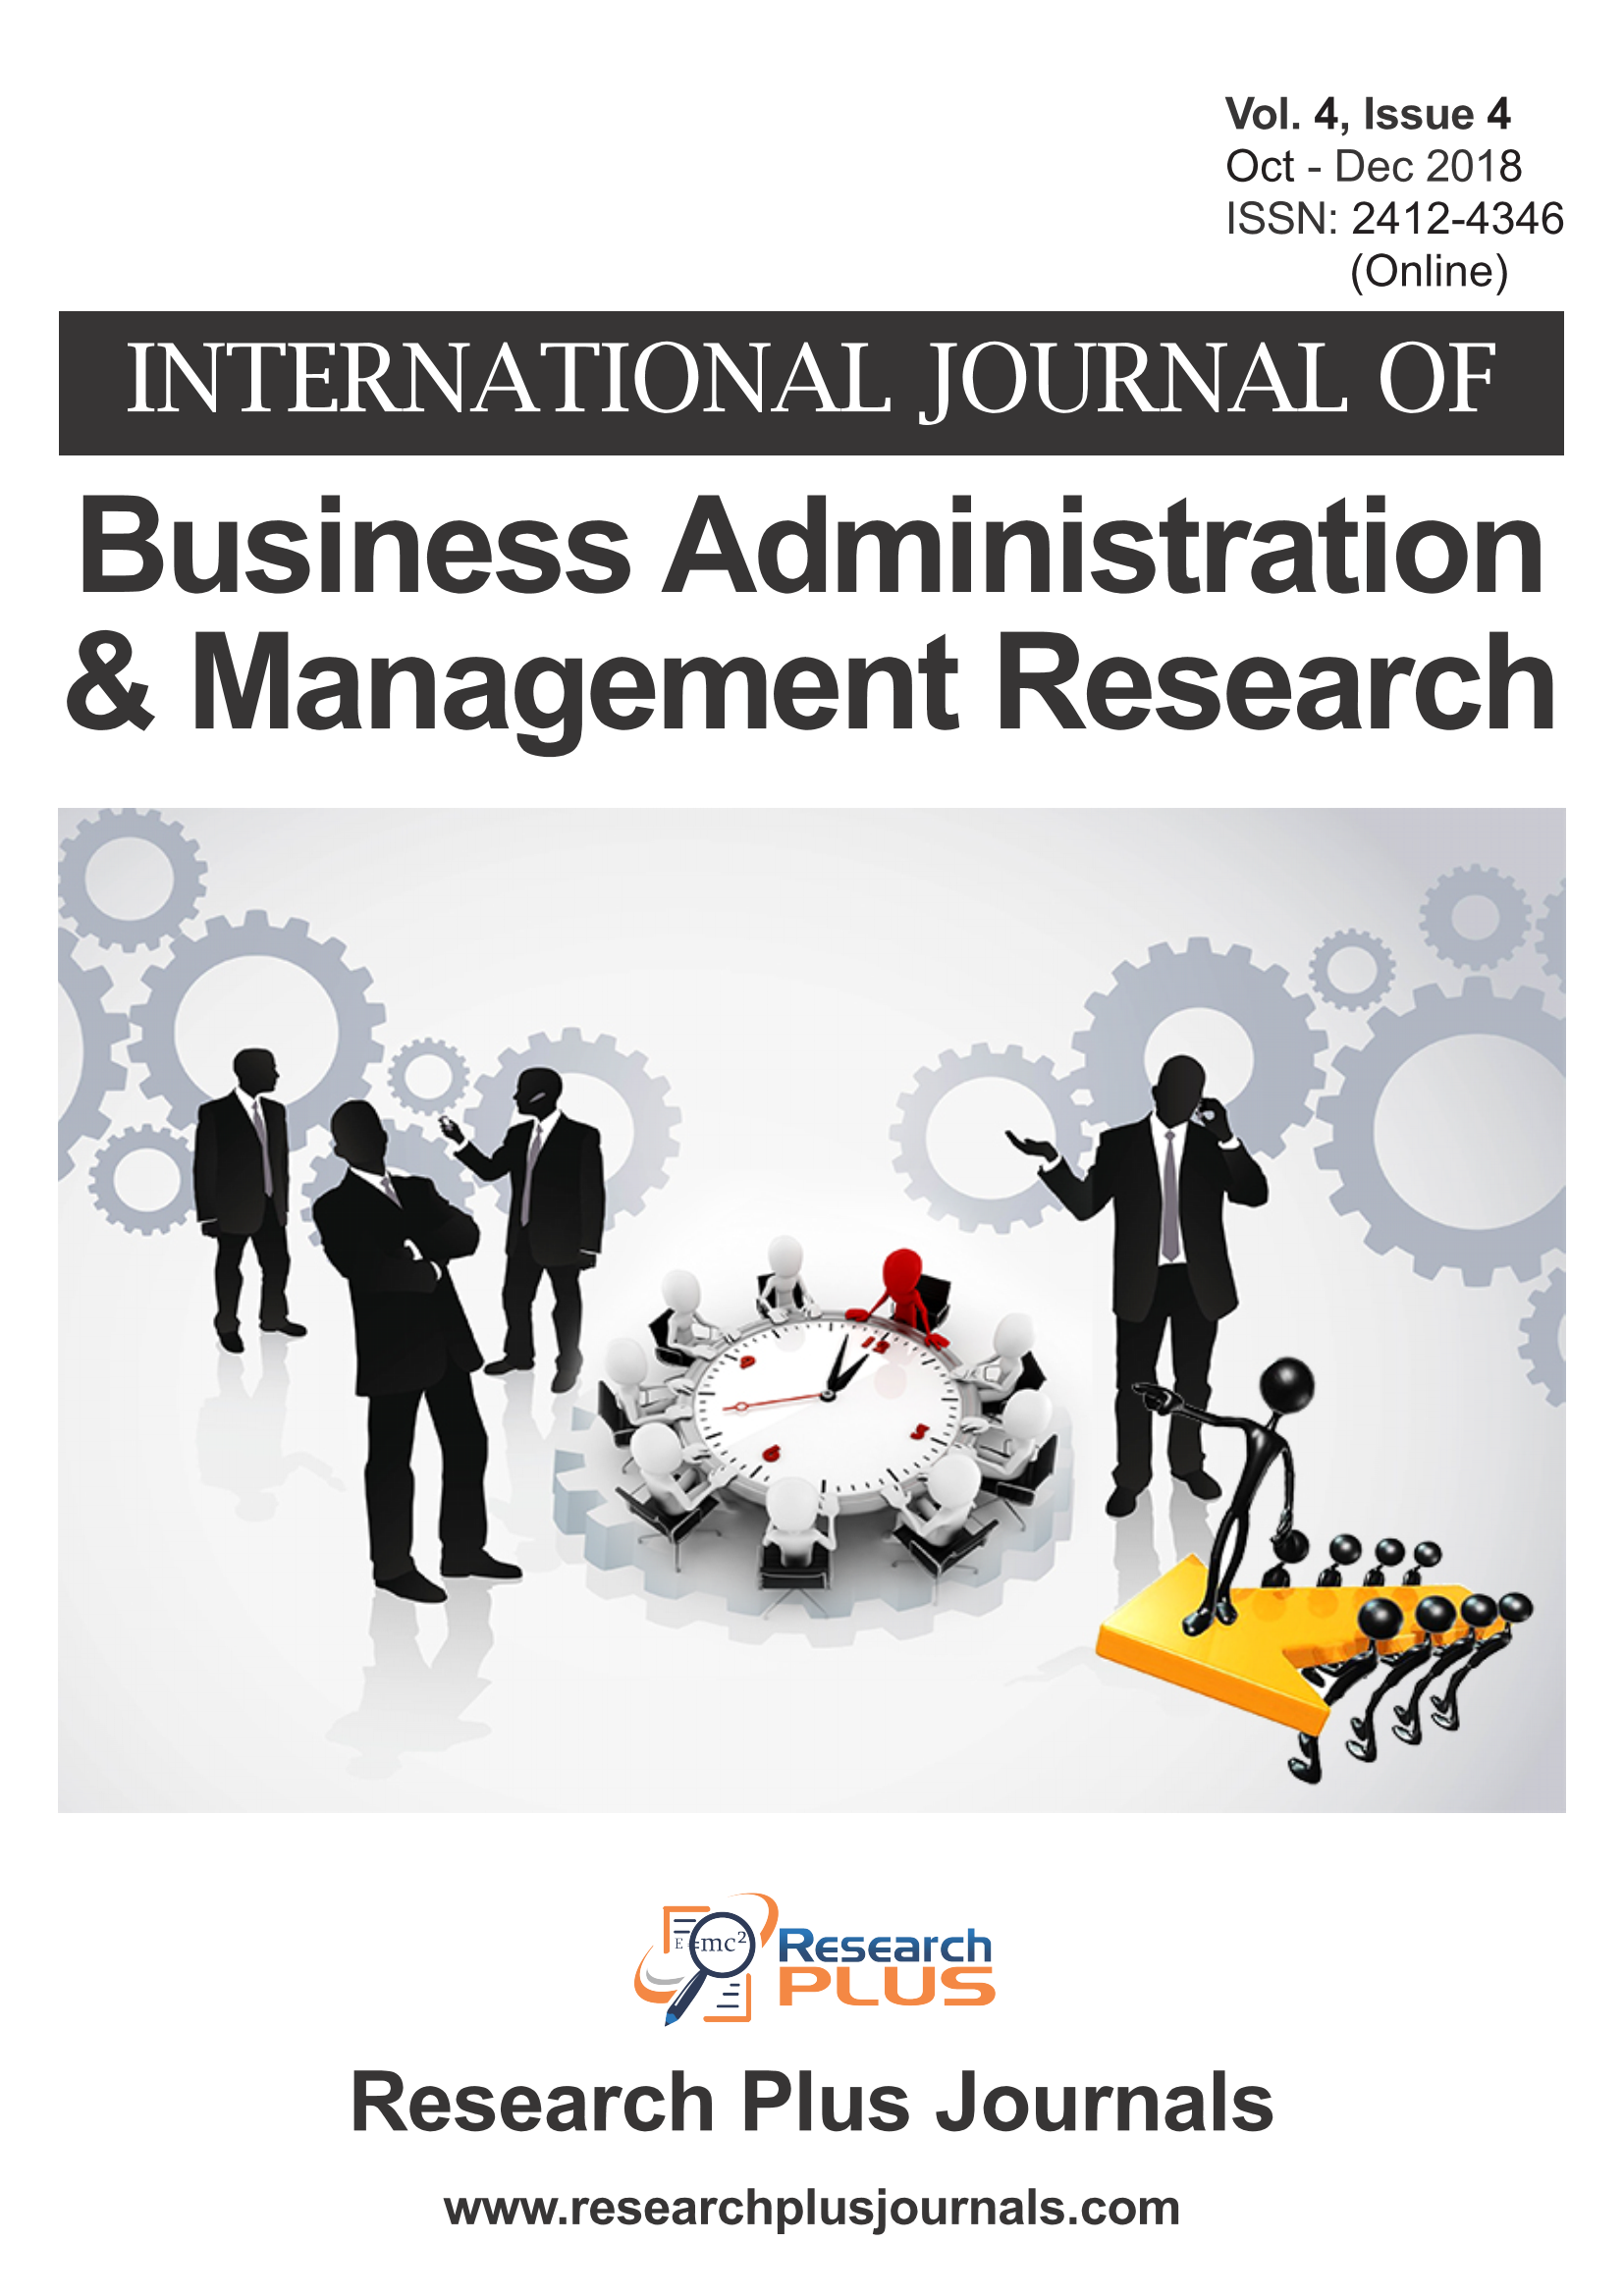 Volume 4, Issue 4, International Journal of Business Administration and Management Research (IJBAMR) (Online ISSN: 2412-4346)